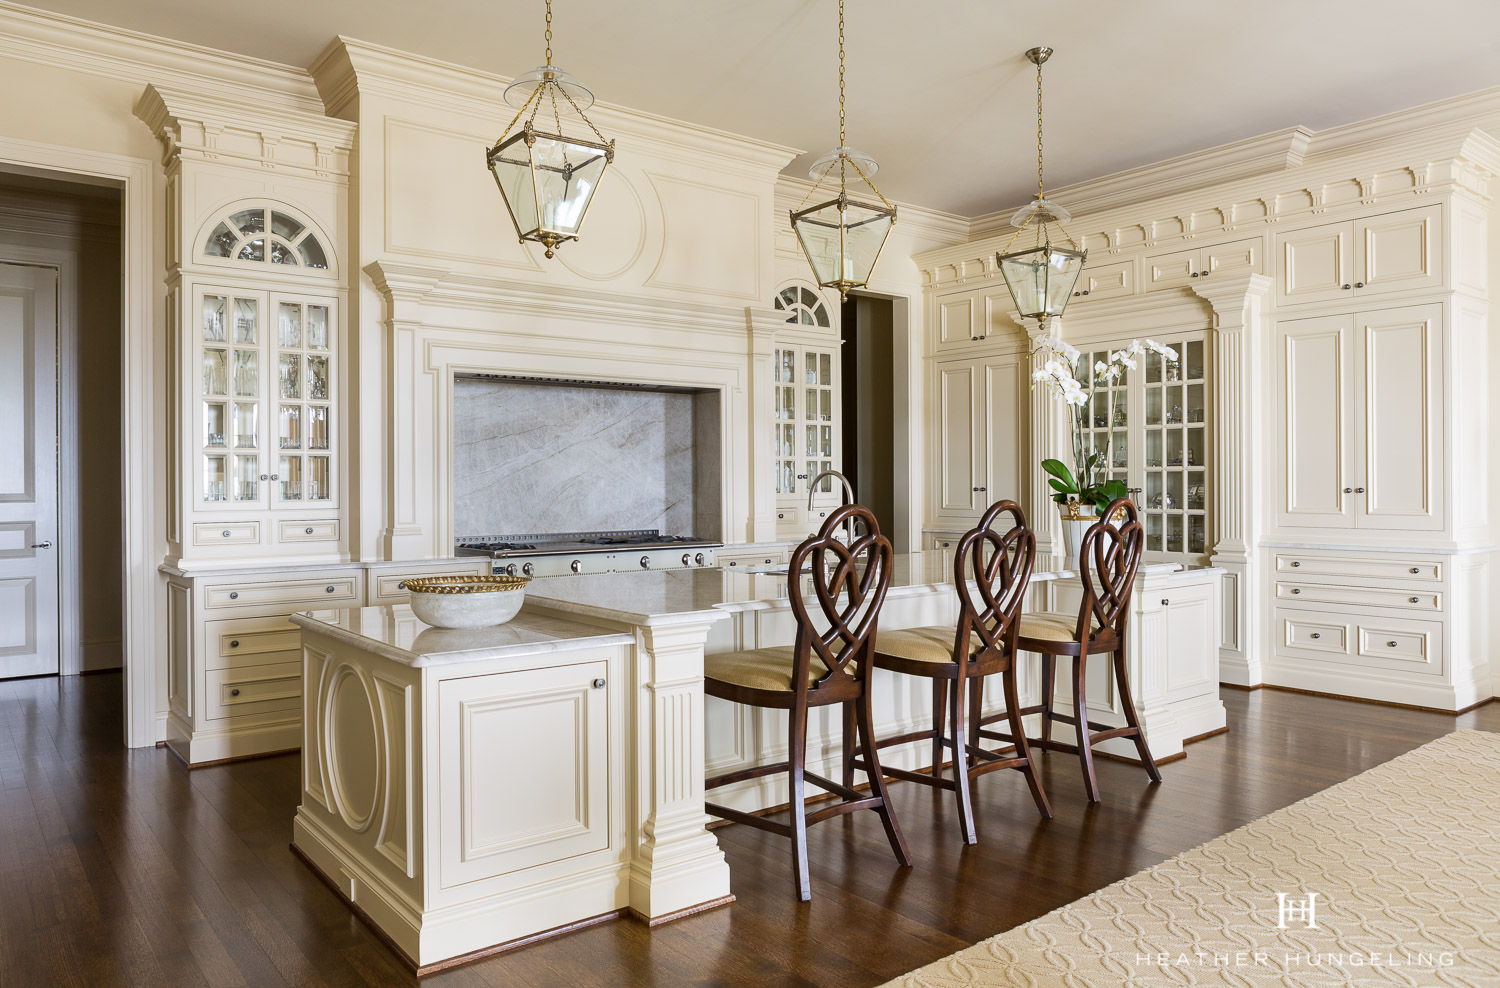 Clive Christian Kitchens - Wentworth Place — Hungeling Design